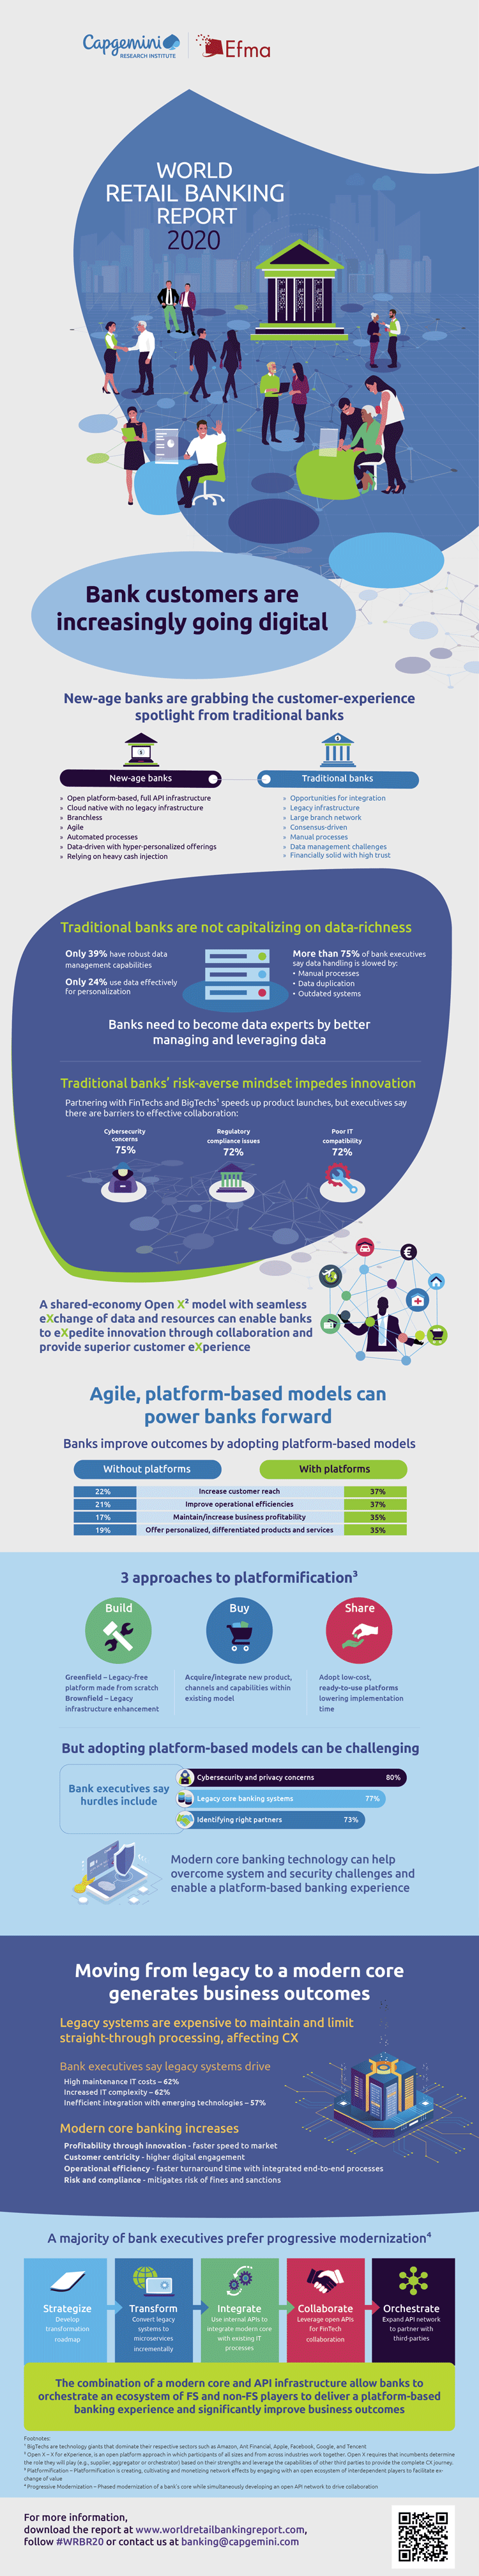 Infografik: Strategische Trends im Retail Banking 2020